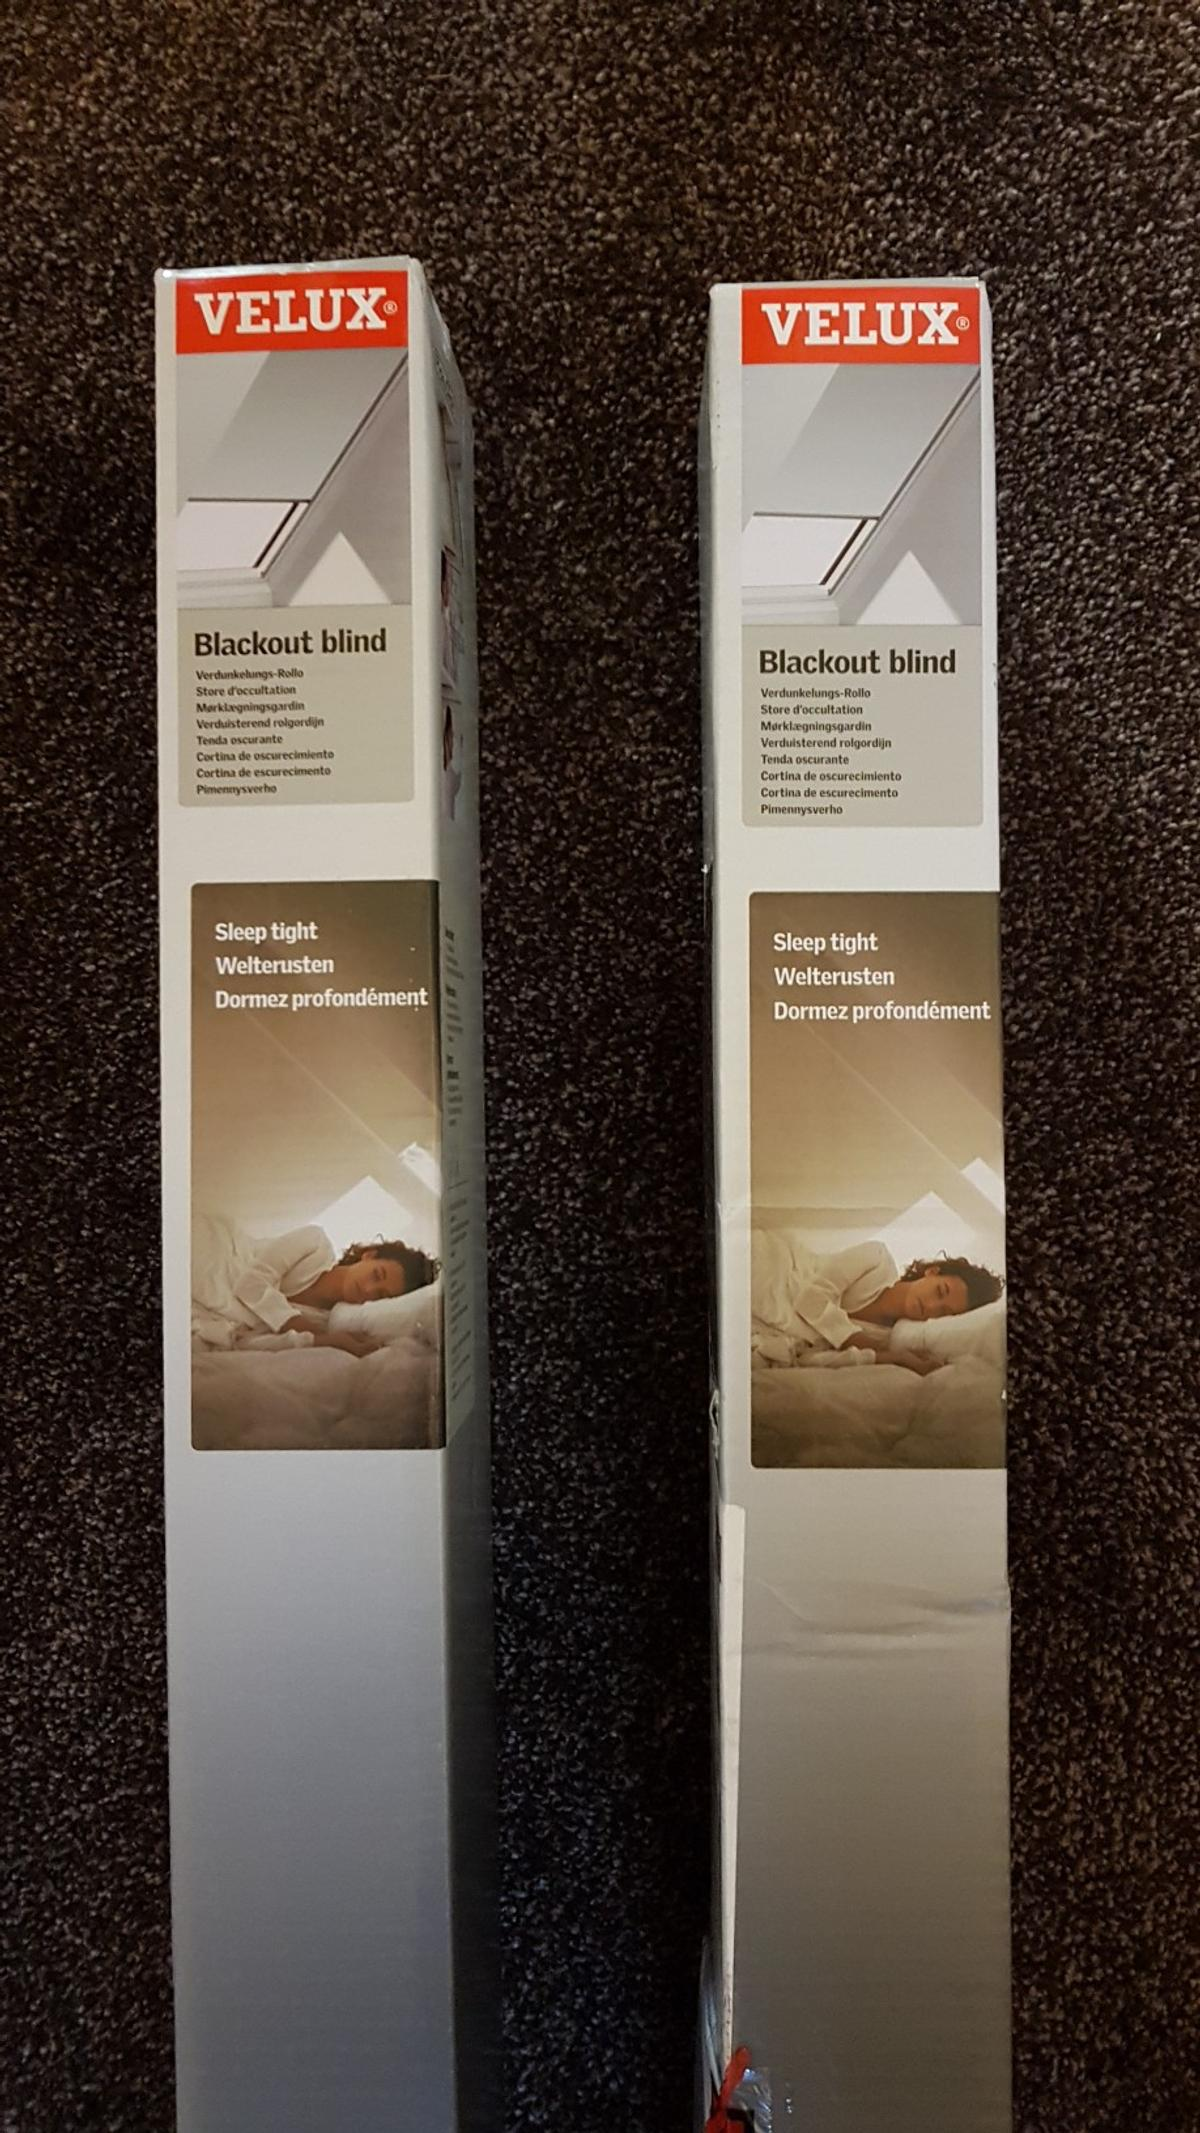 2 X Velux Blackout Blinds In Tw5 Hounslow Fur 79 00 Kaufen Shpock